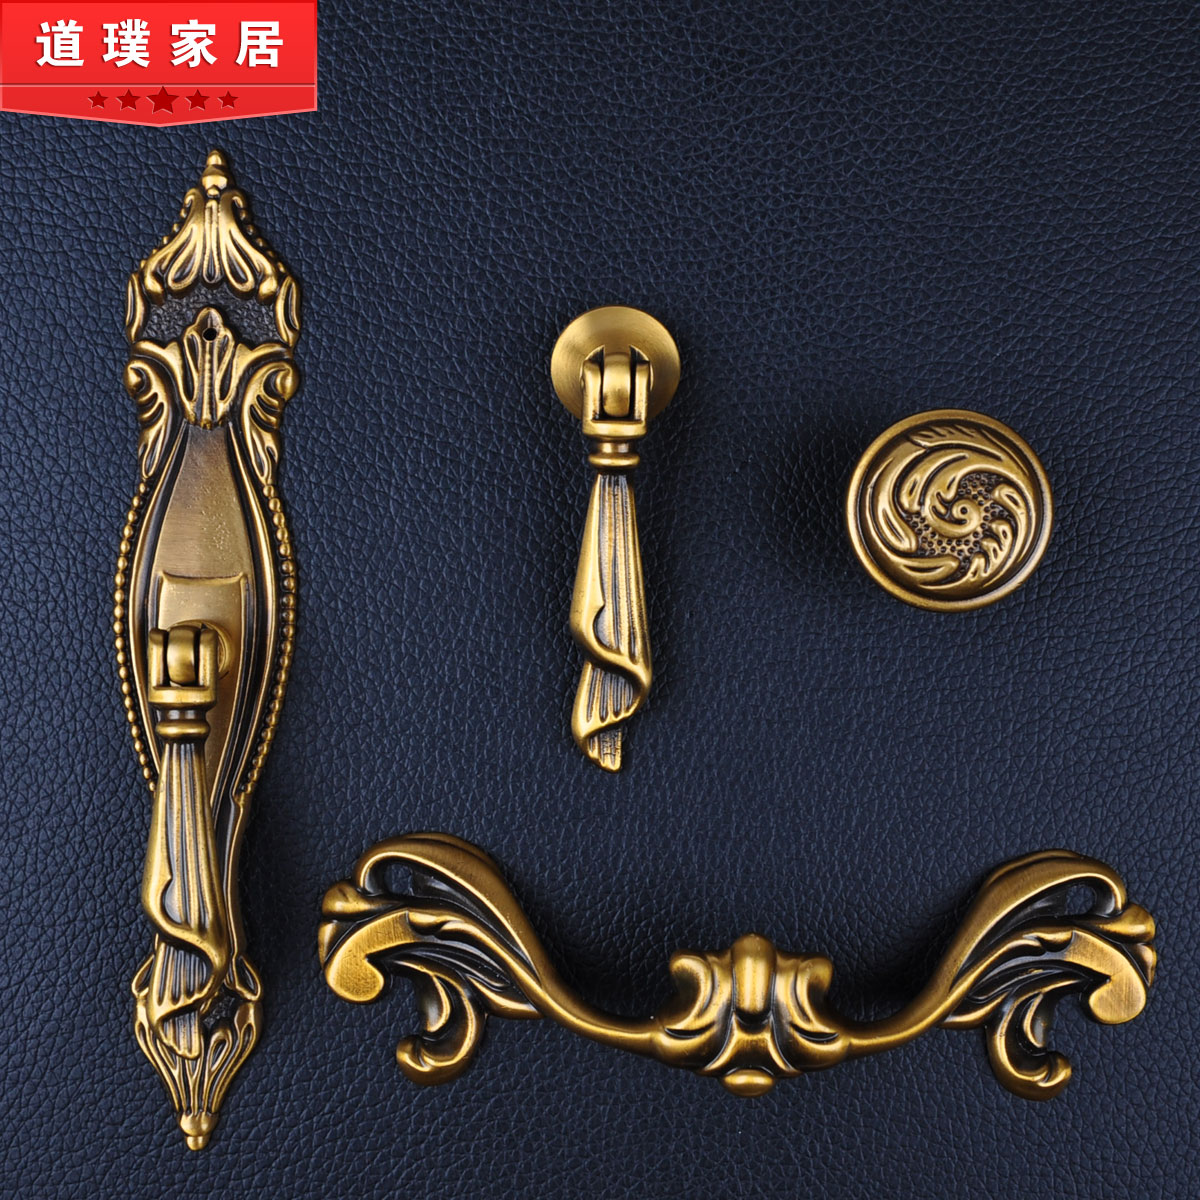 Get Quotations · Chinese continental antique copper handle wardrobe  cupboard door handle hole handle drawer door handles pure brass - China Brass Cupboard Handles, China Brass Cupboard Handles Shopping